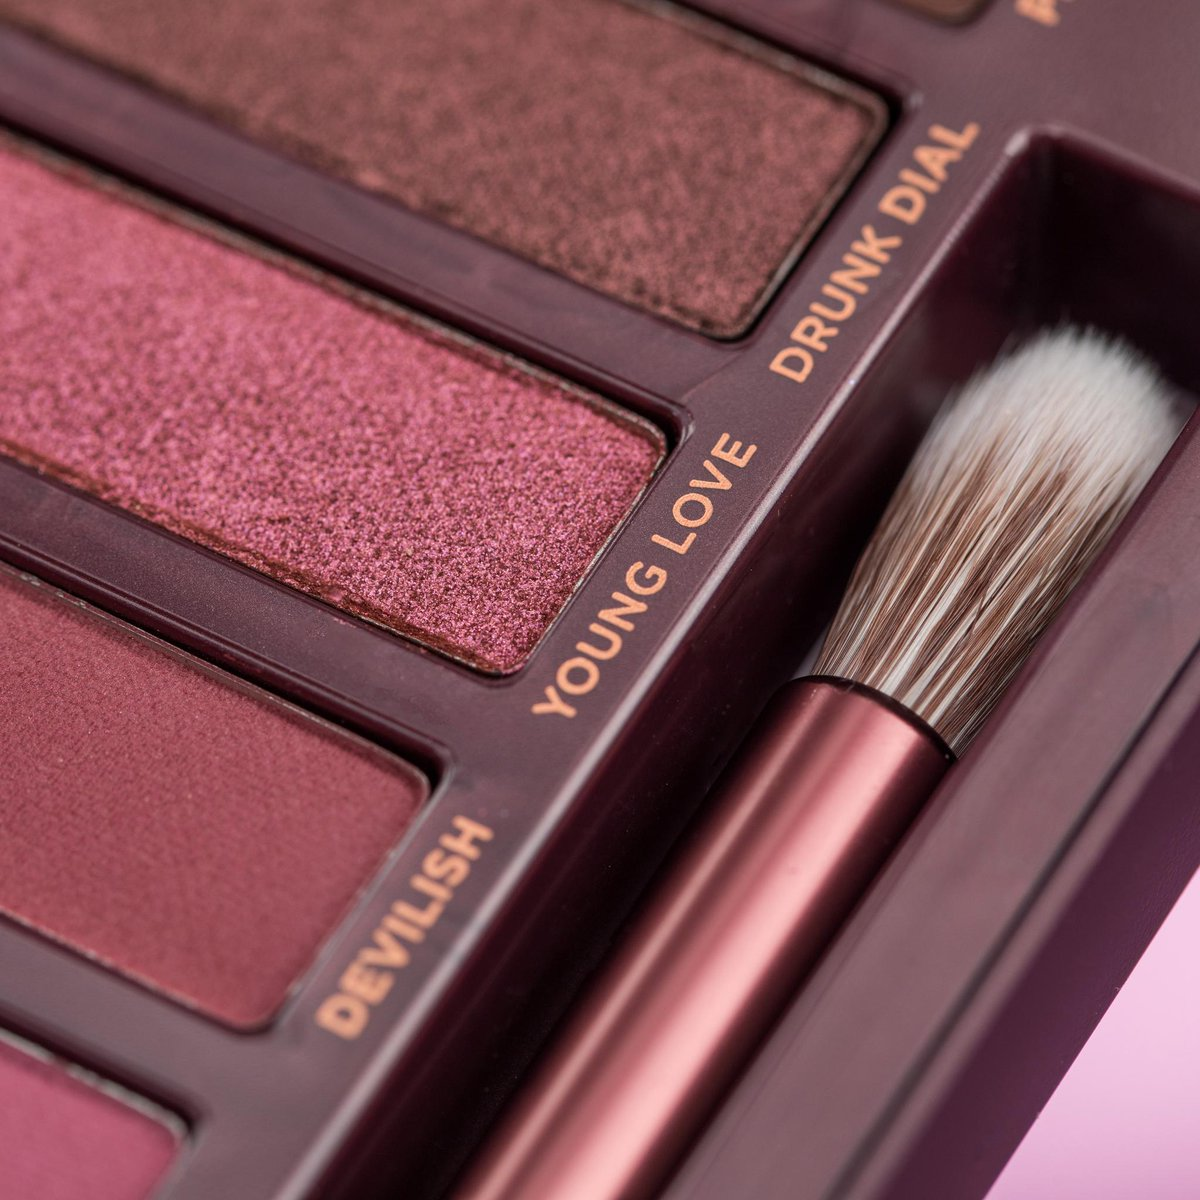 Funny how these three shades wound up next to each other...no? 🍒 #UrbanDecay #NakedCherry #🍒